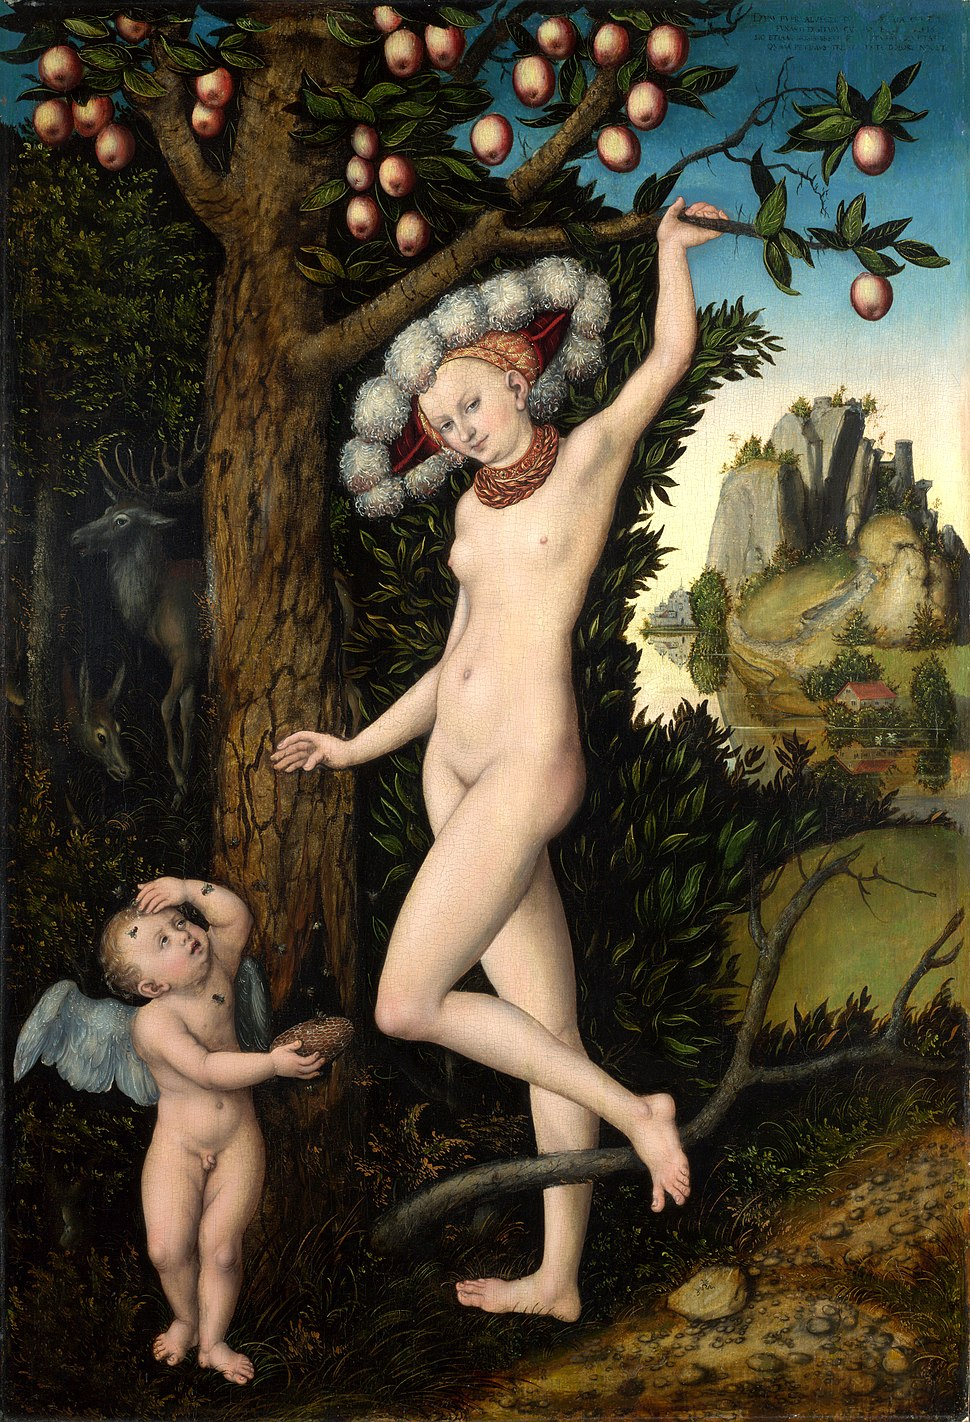 Lucas Cranach d.%C3%84. - Amor beklagt sich bei Venus (National Gallery, London)